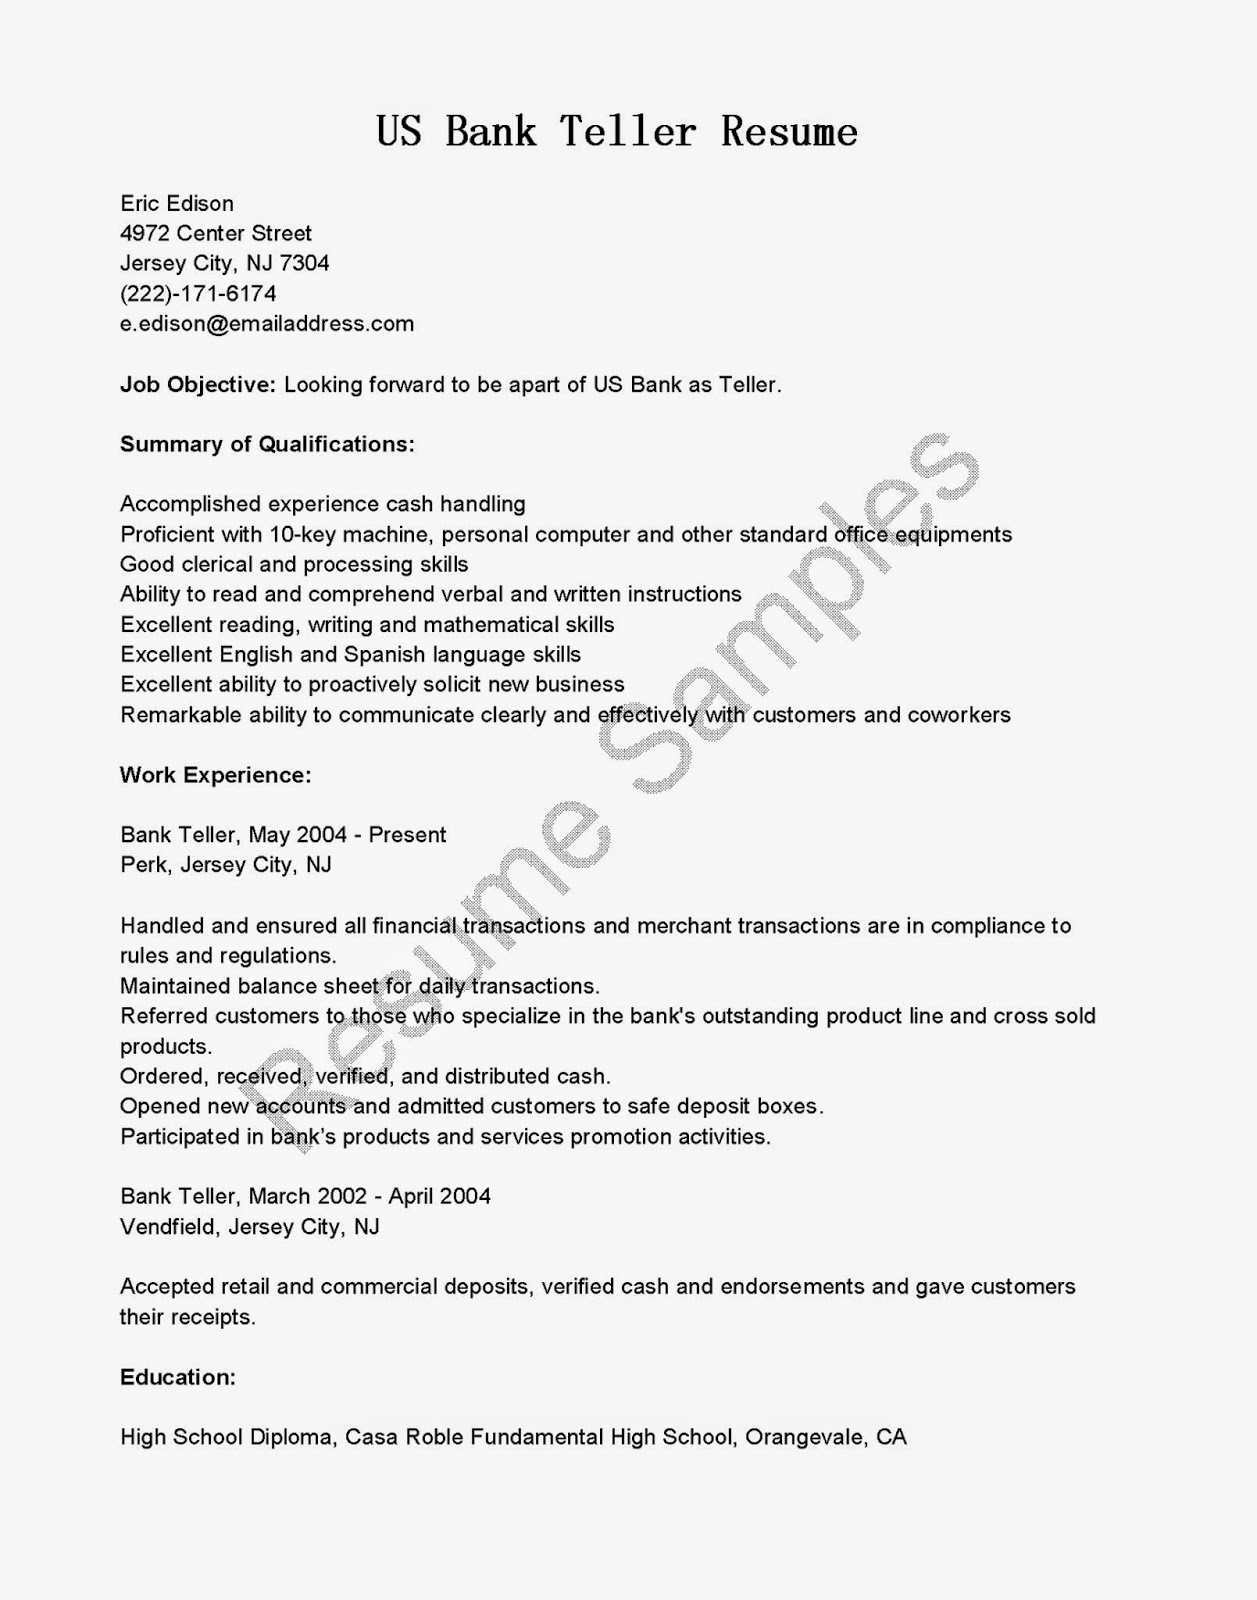 Resume Examples Sales Position Cdl Driver Resume Socialsci Cotruck Driver  Resume Job Description Truck Driver Resume  Resume Examples For Sales